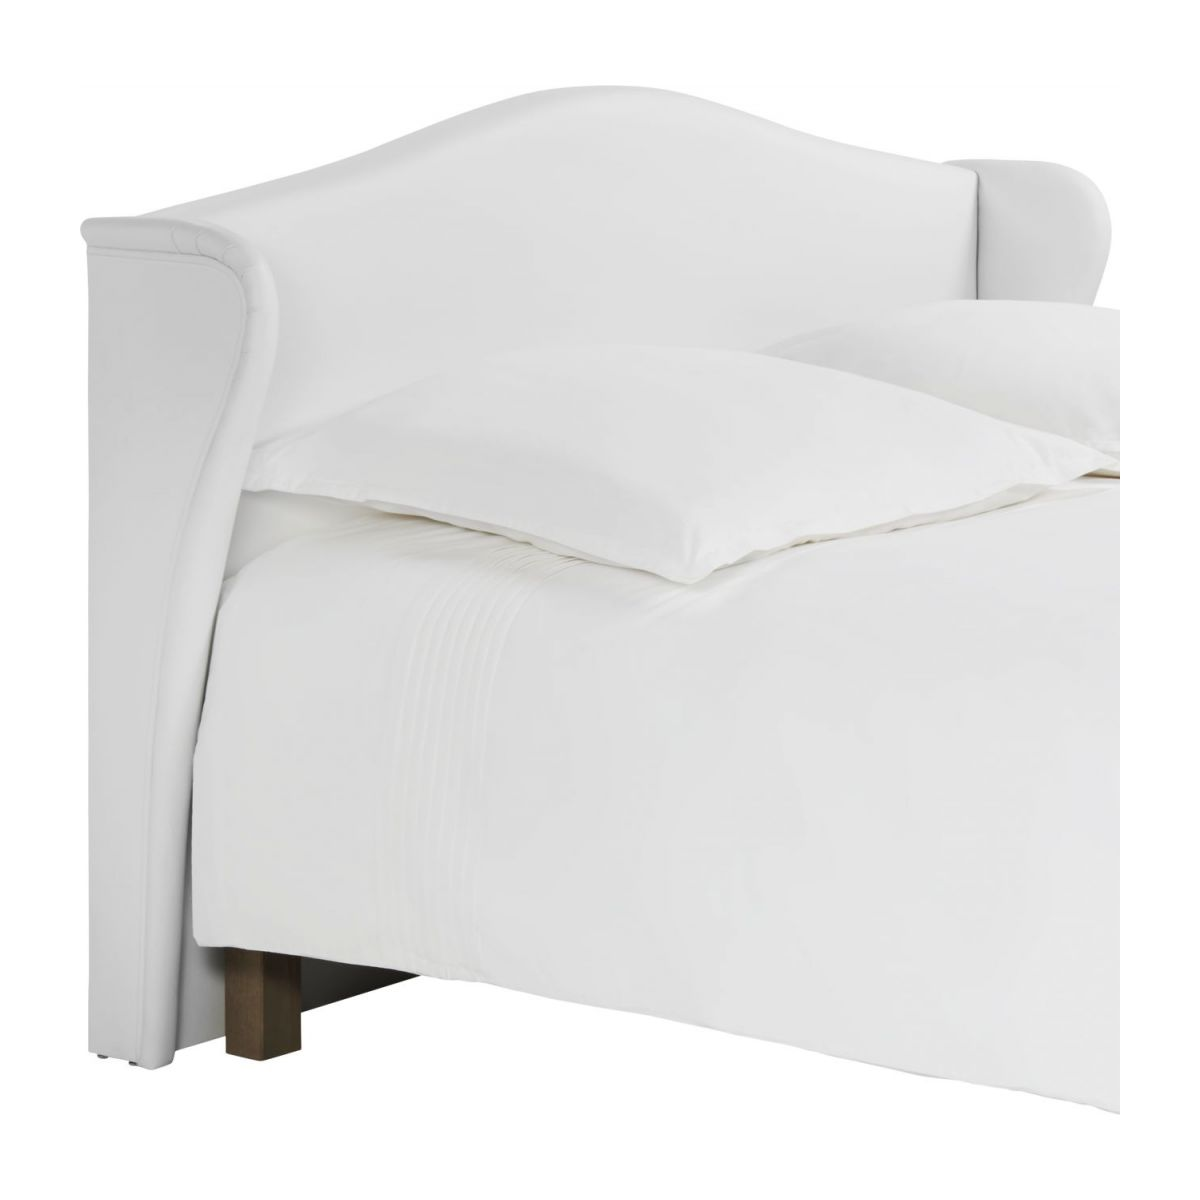 Headboard for 160cm box spring in imitation leather, white n°1